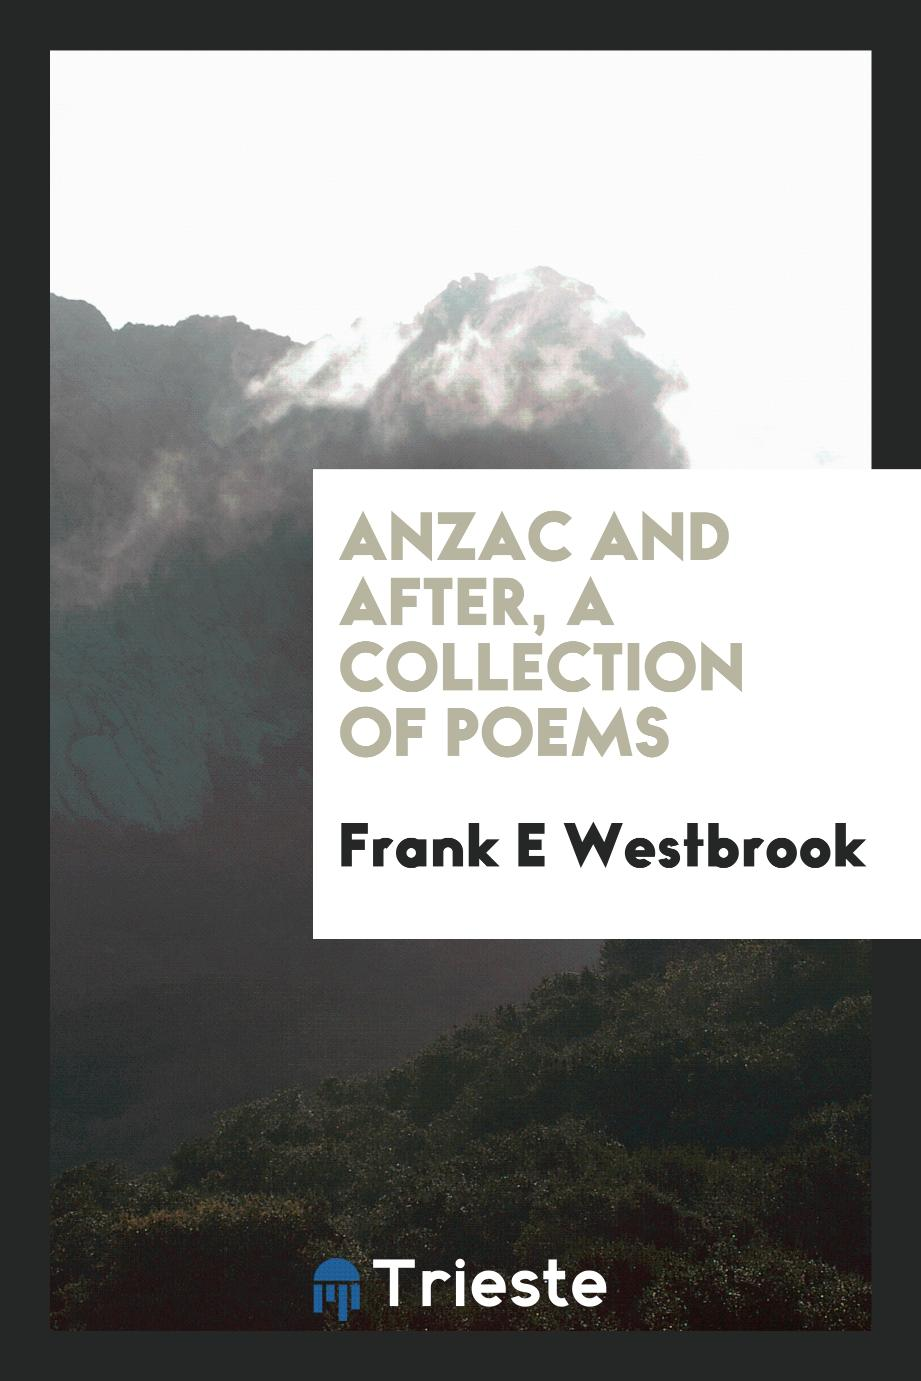 Anzac and after, a collection of poems